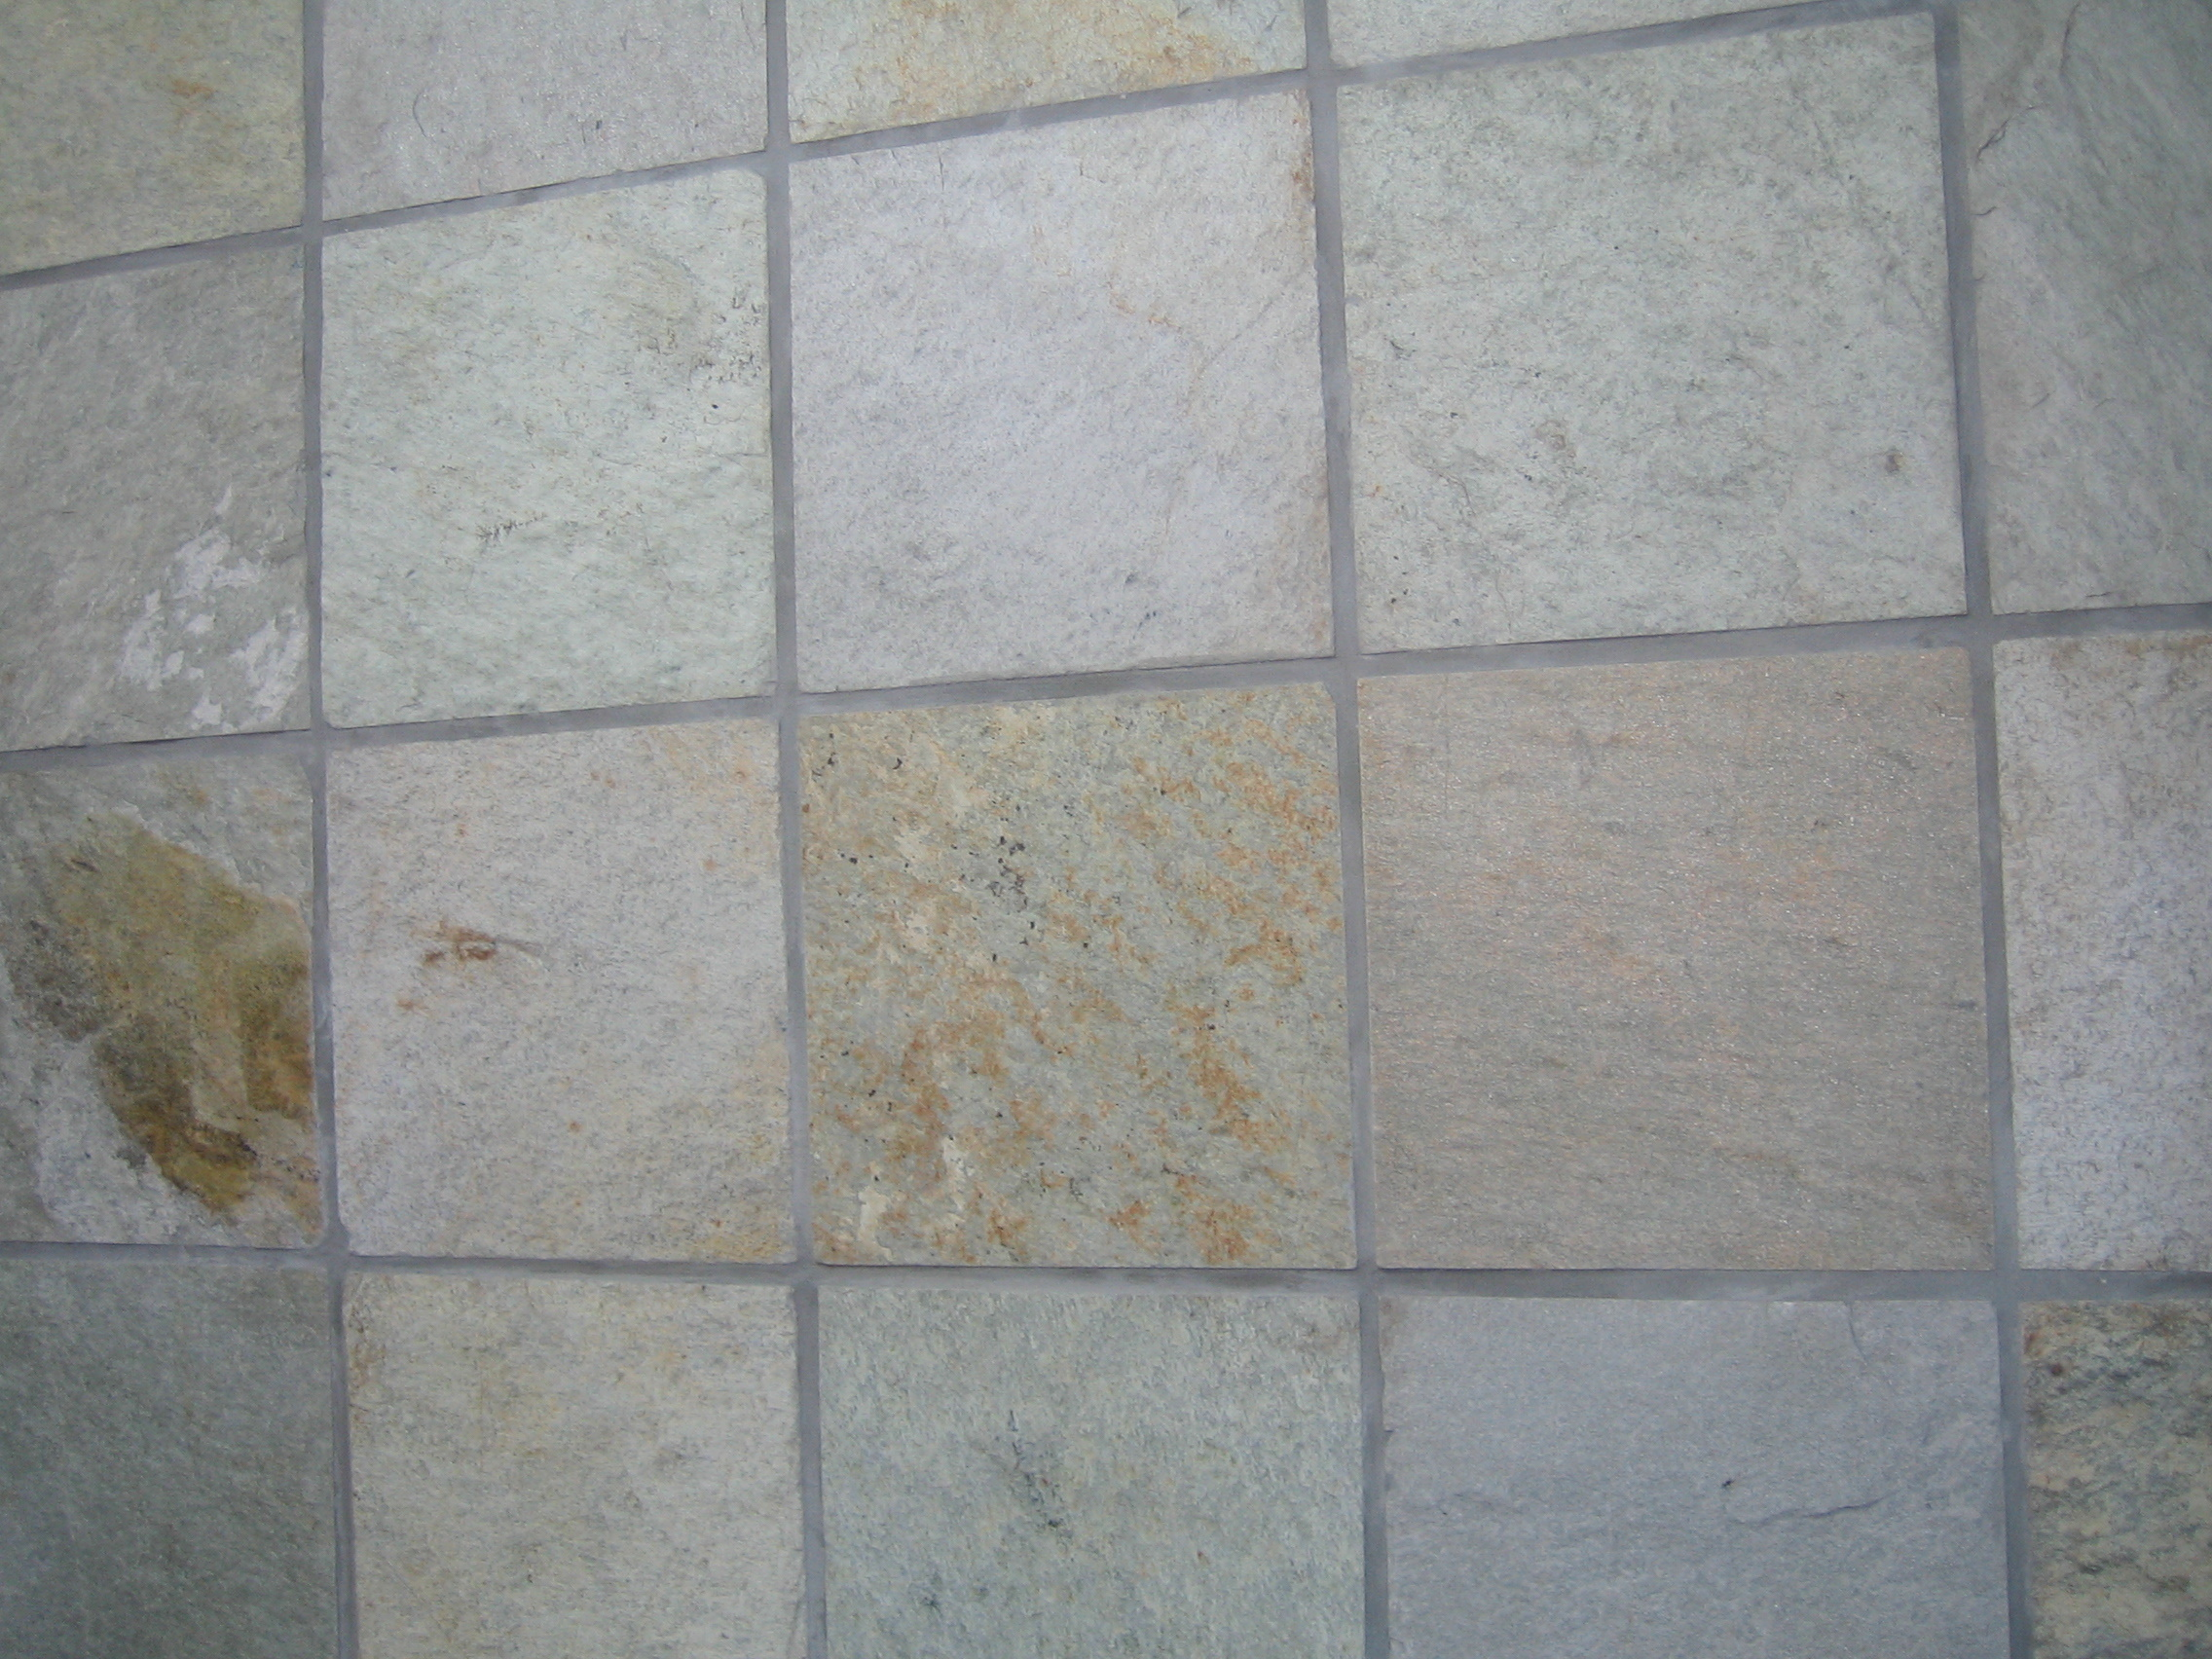 10. Himalaya quartz tiles 300x300mm